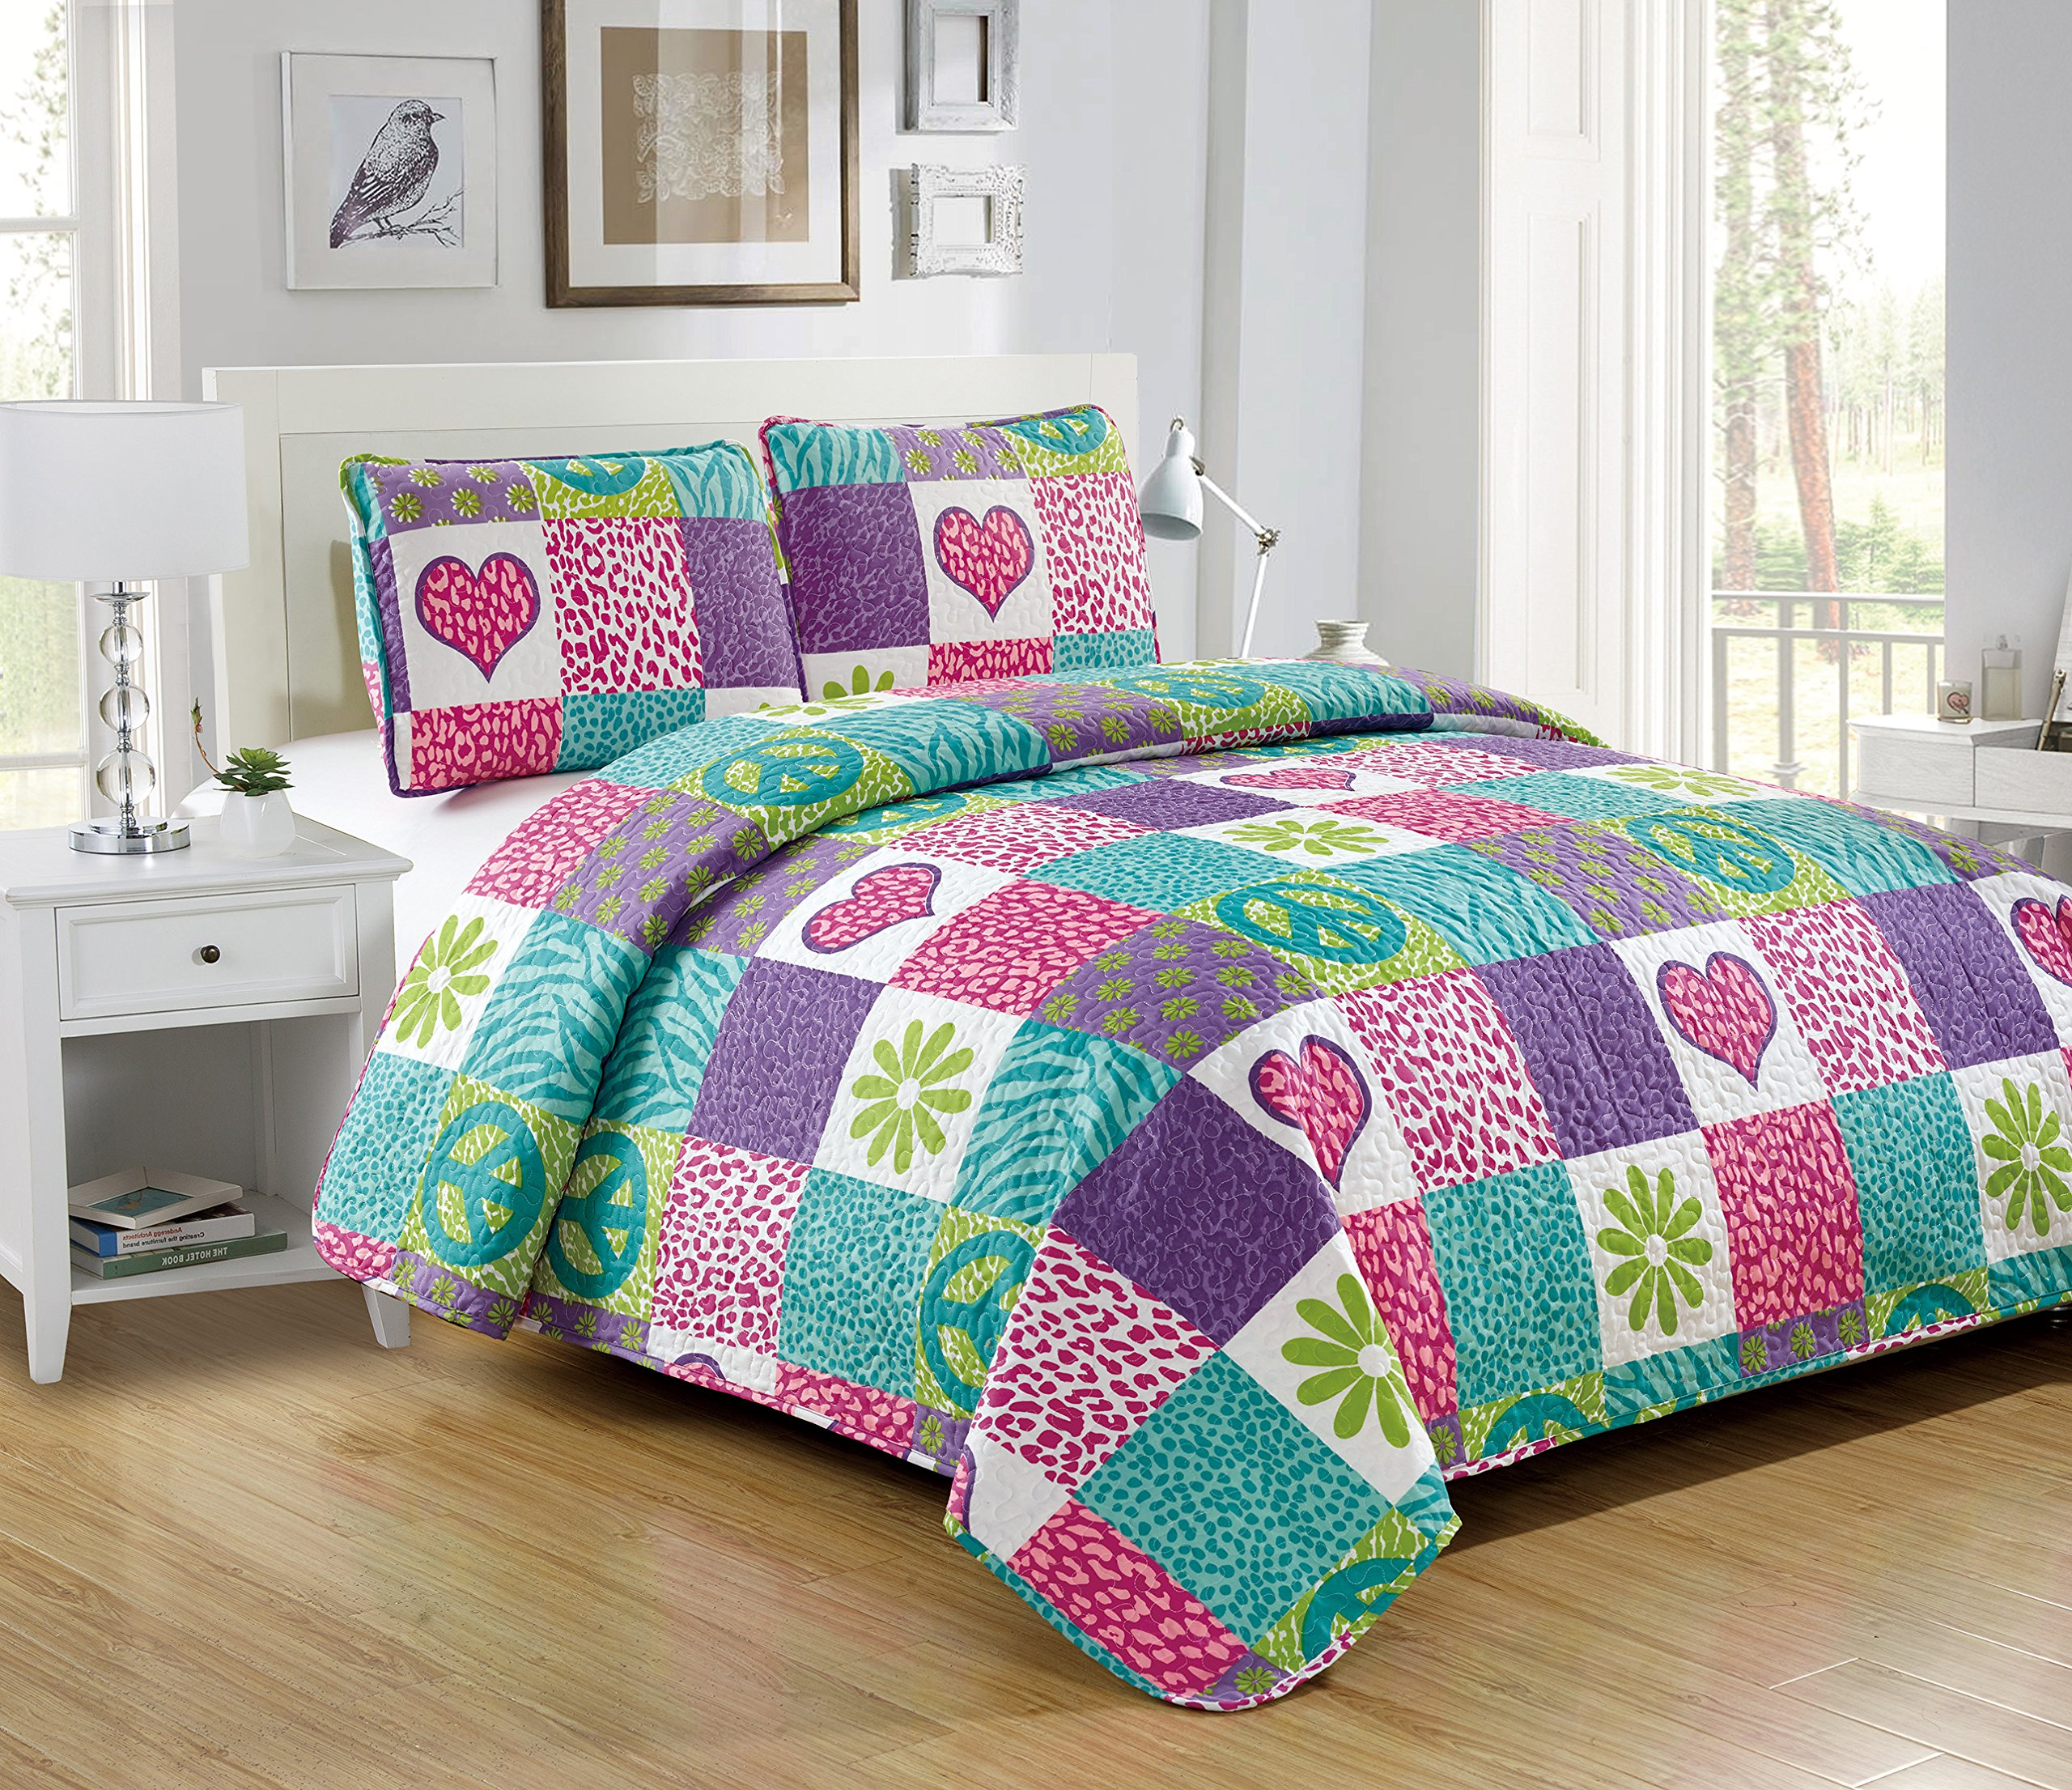 Mk Collection 2 Pc Bedspread Teens/girls Pink Purple Teal Heart Flower Peace Sighn Safari New by MK Home